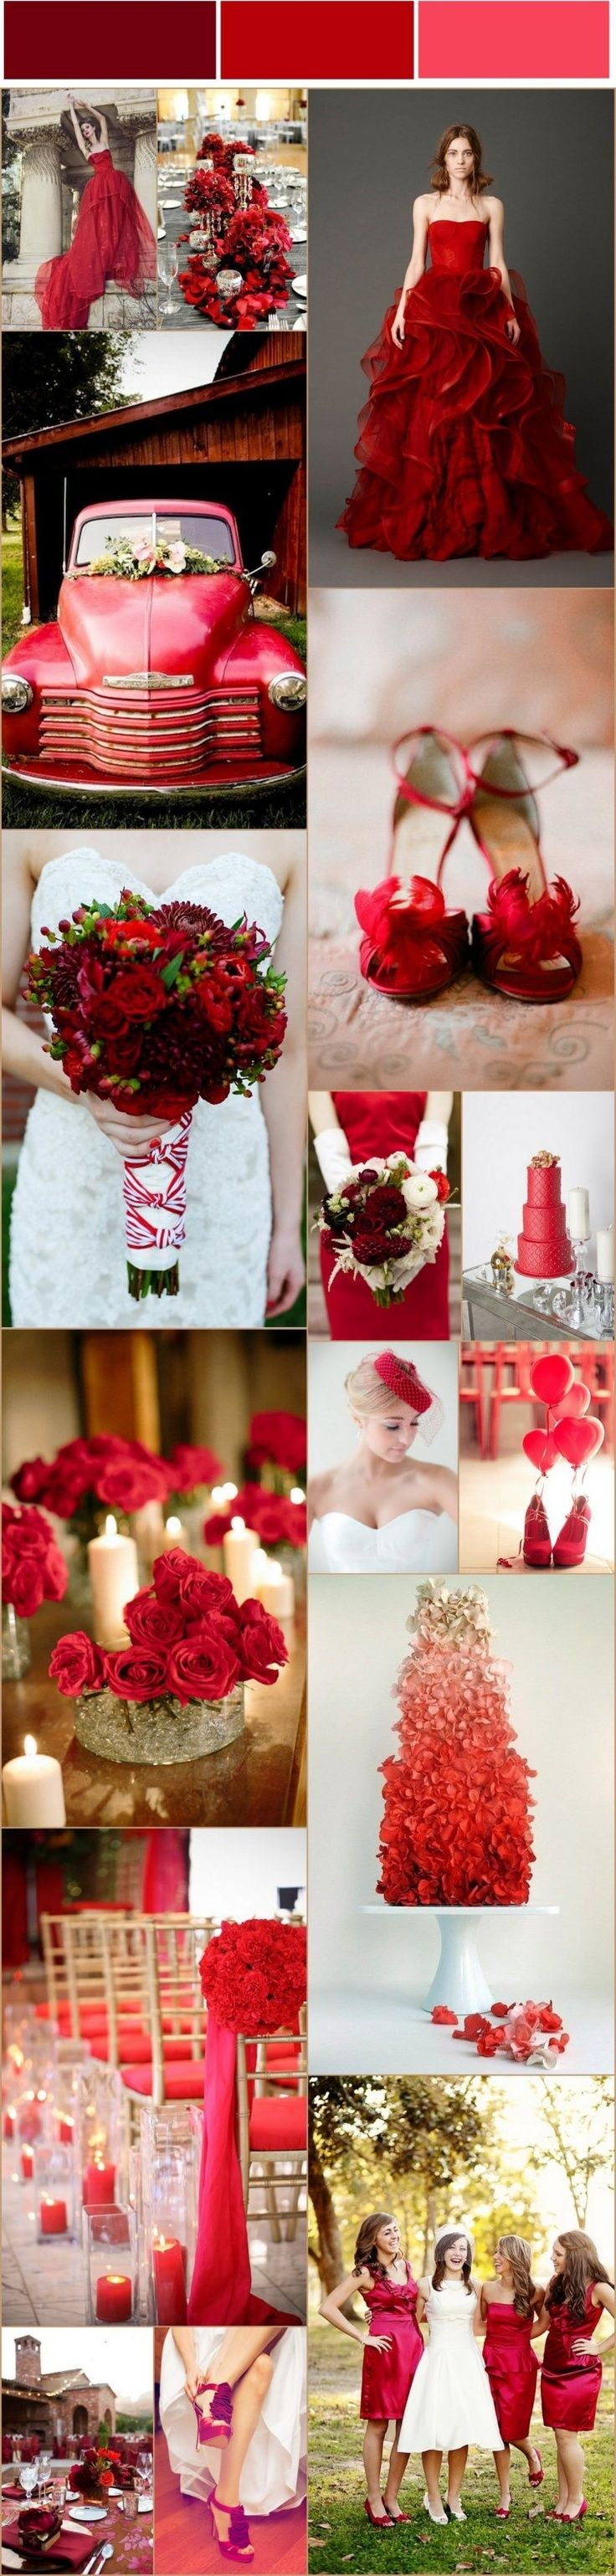 43 best images about Red Wedding on Pinterest